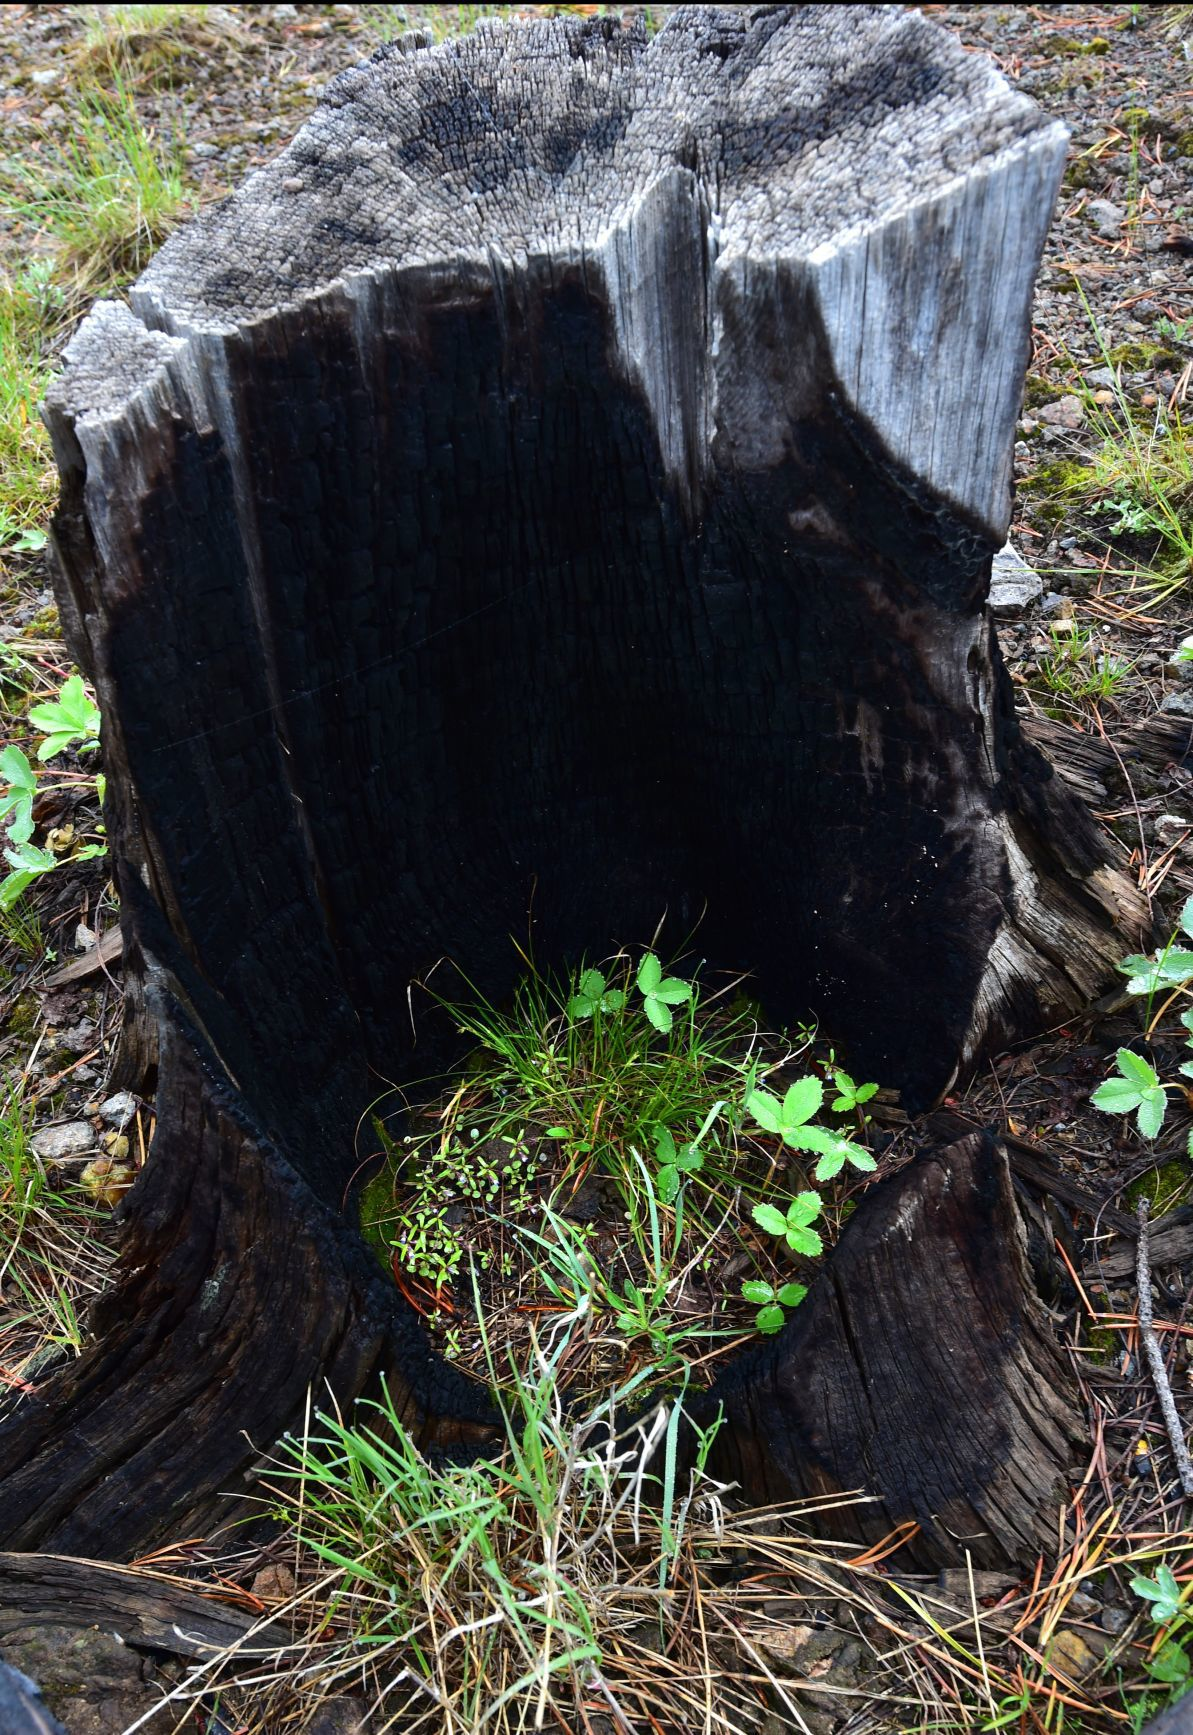 Fire stump new growth